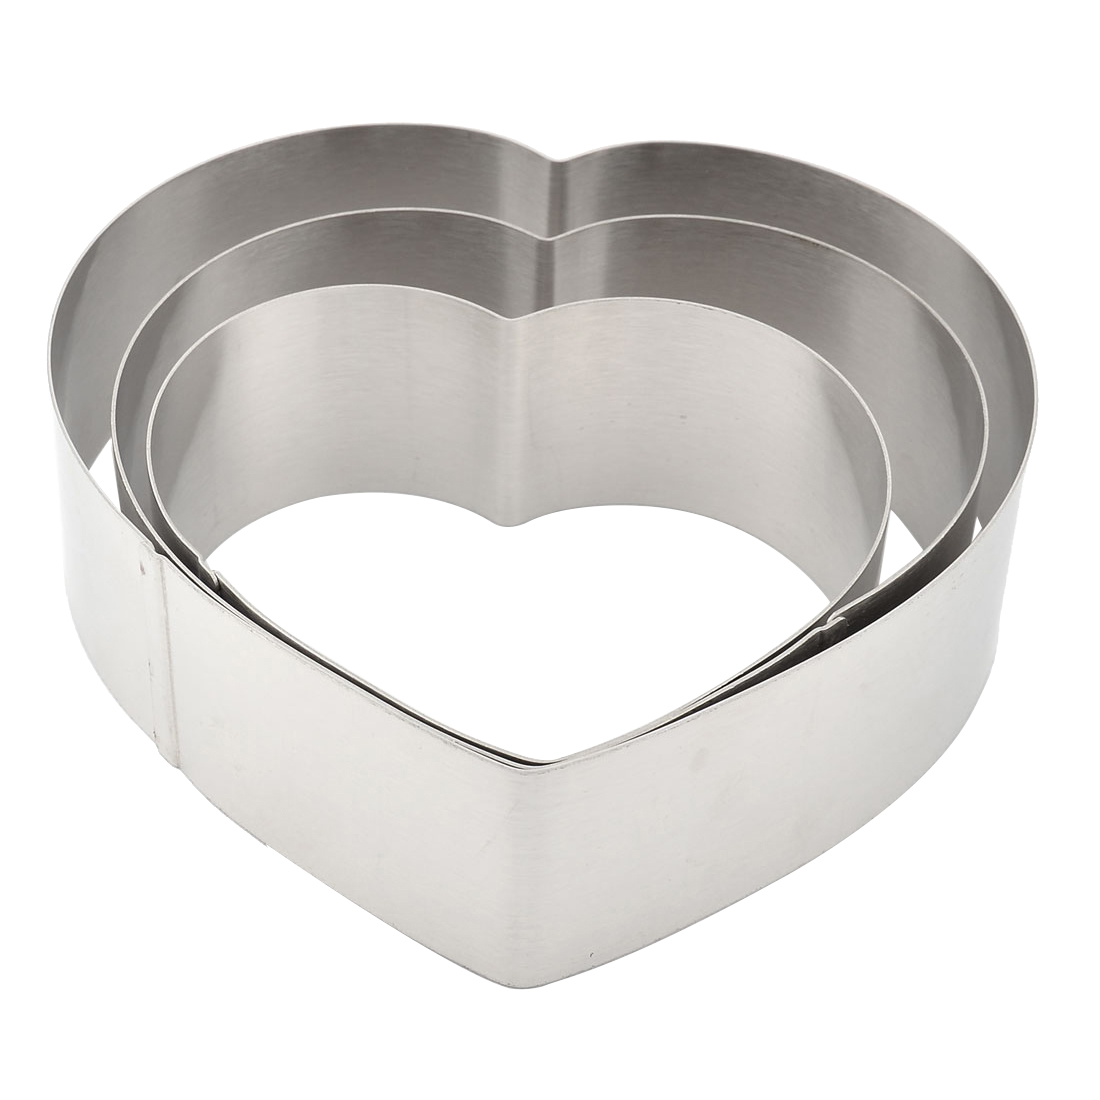 Home Kitchen Metal Heart Shape DIY Baking Tool Cake Fondant Muffin Mold Silver Tone 3 in 1